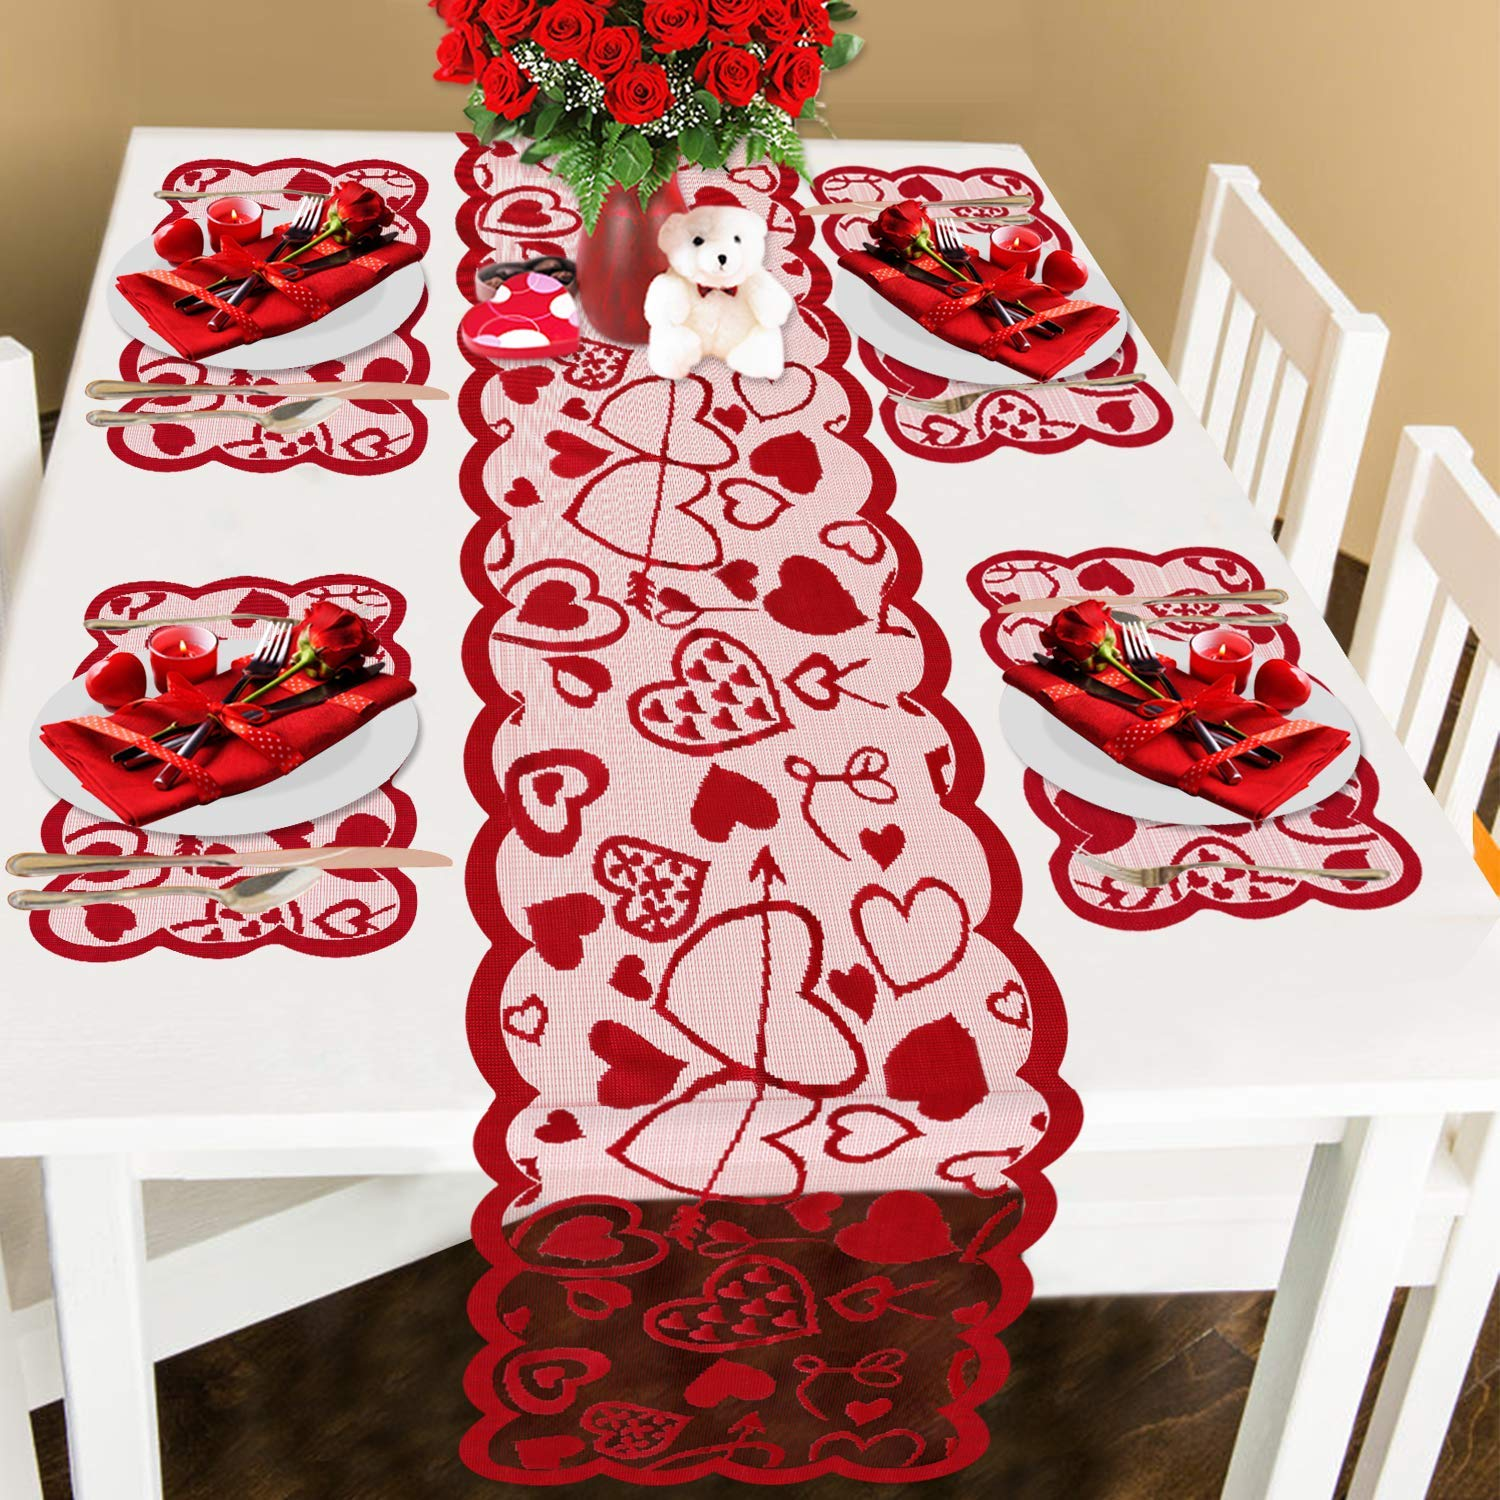 Top 10 Most Beautiful Valentine's Day Decoration Ideas 2020